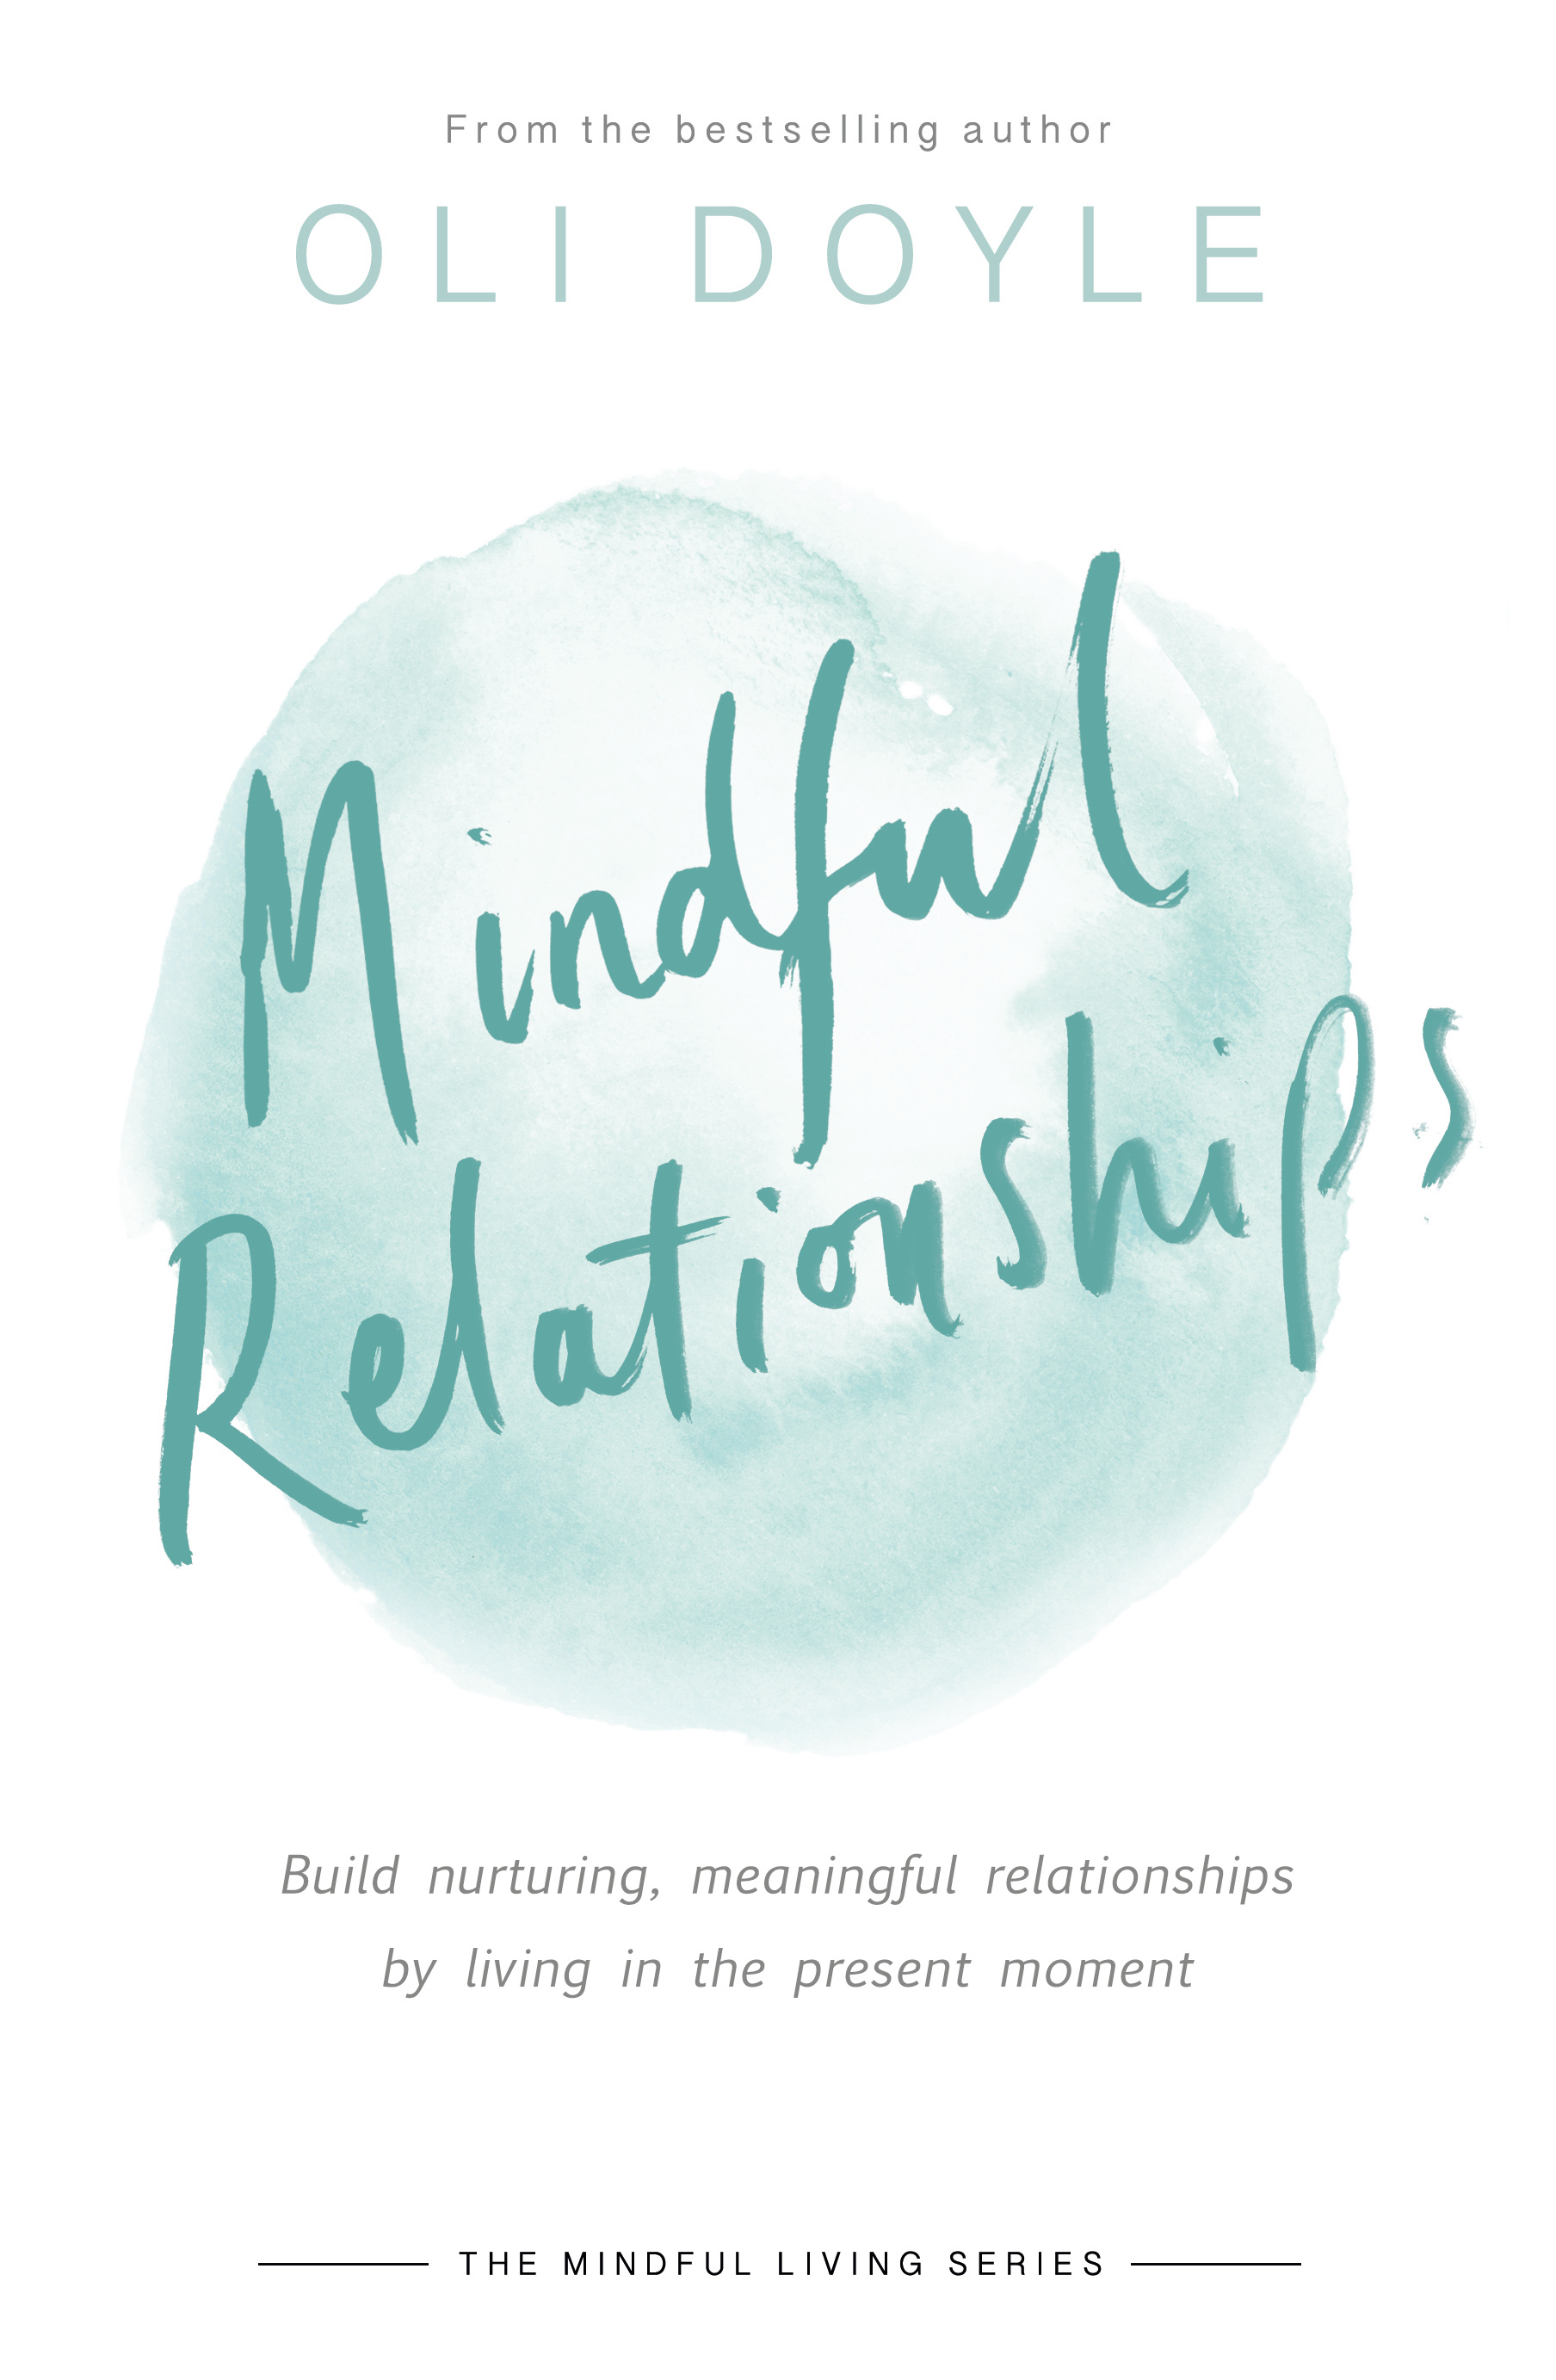 Mindful Relationships: Build nurturing, meaningful relationships by living in the present moment by Oli Doyle, ISBN: 9781409167488